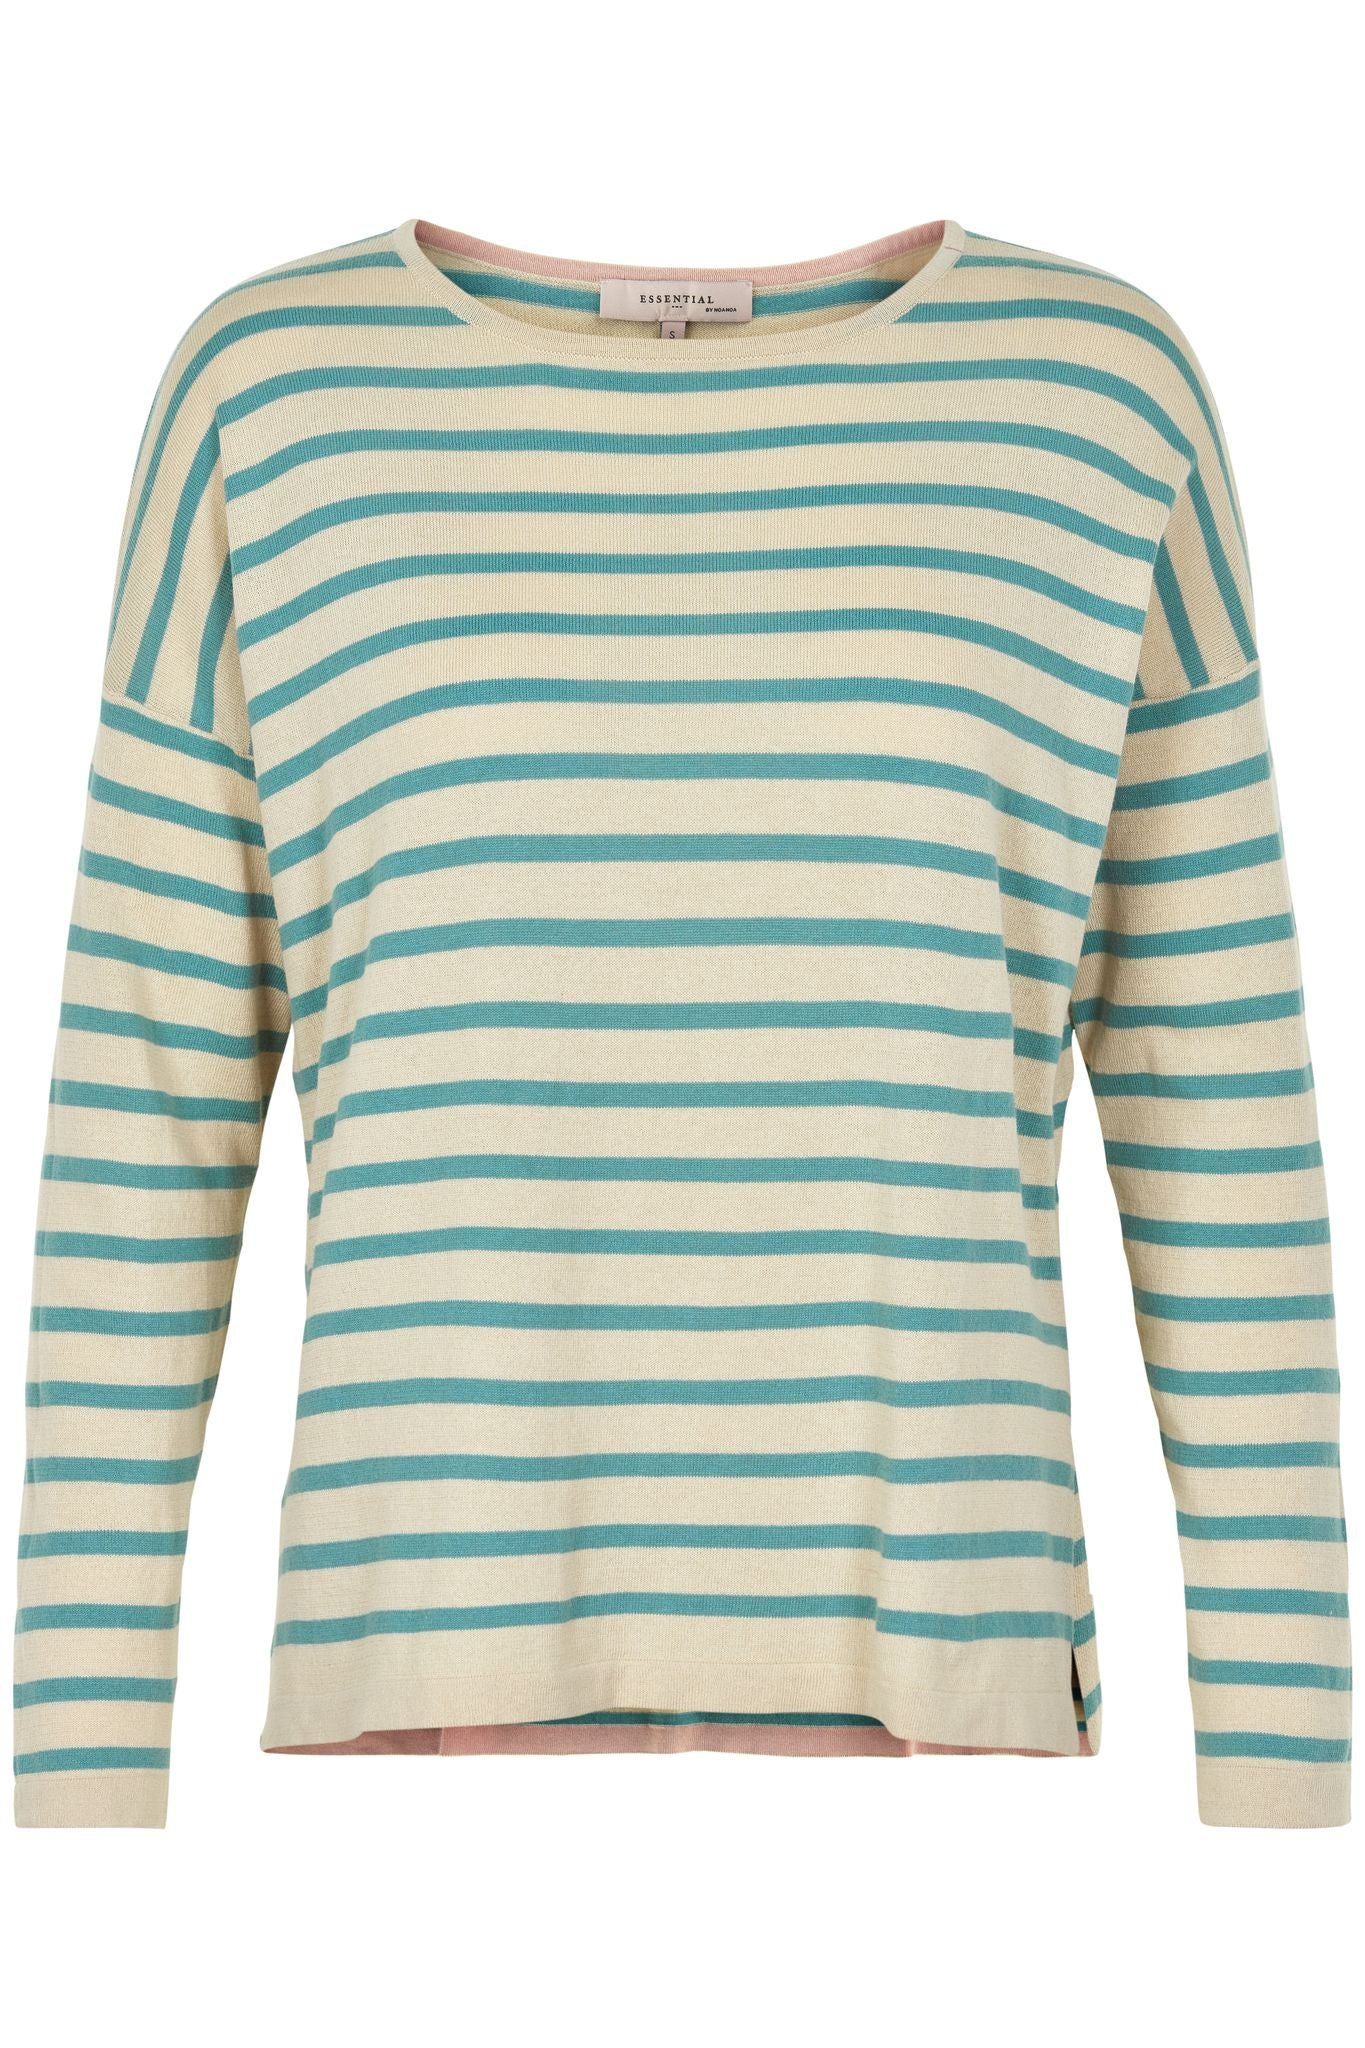 Noa Noa knit striped pullover stripe t-shirt green and white.